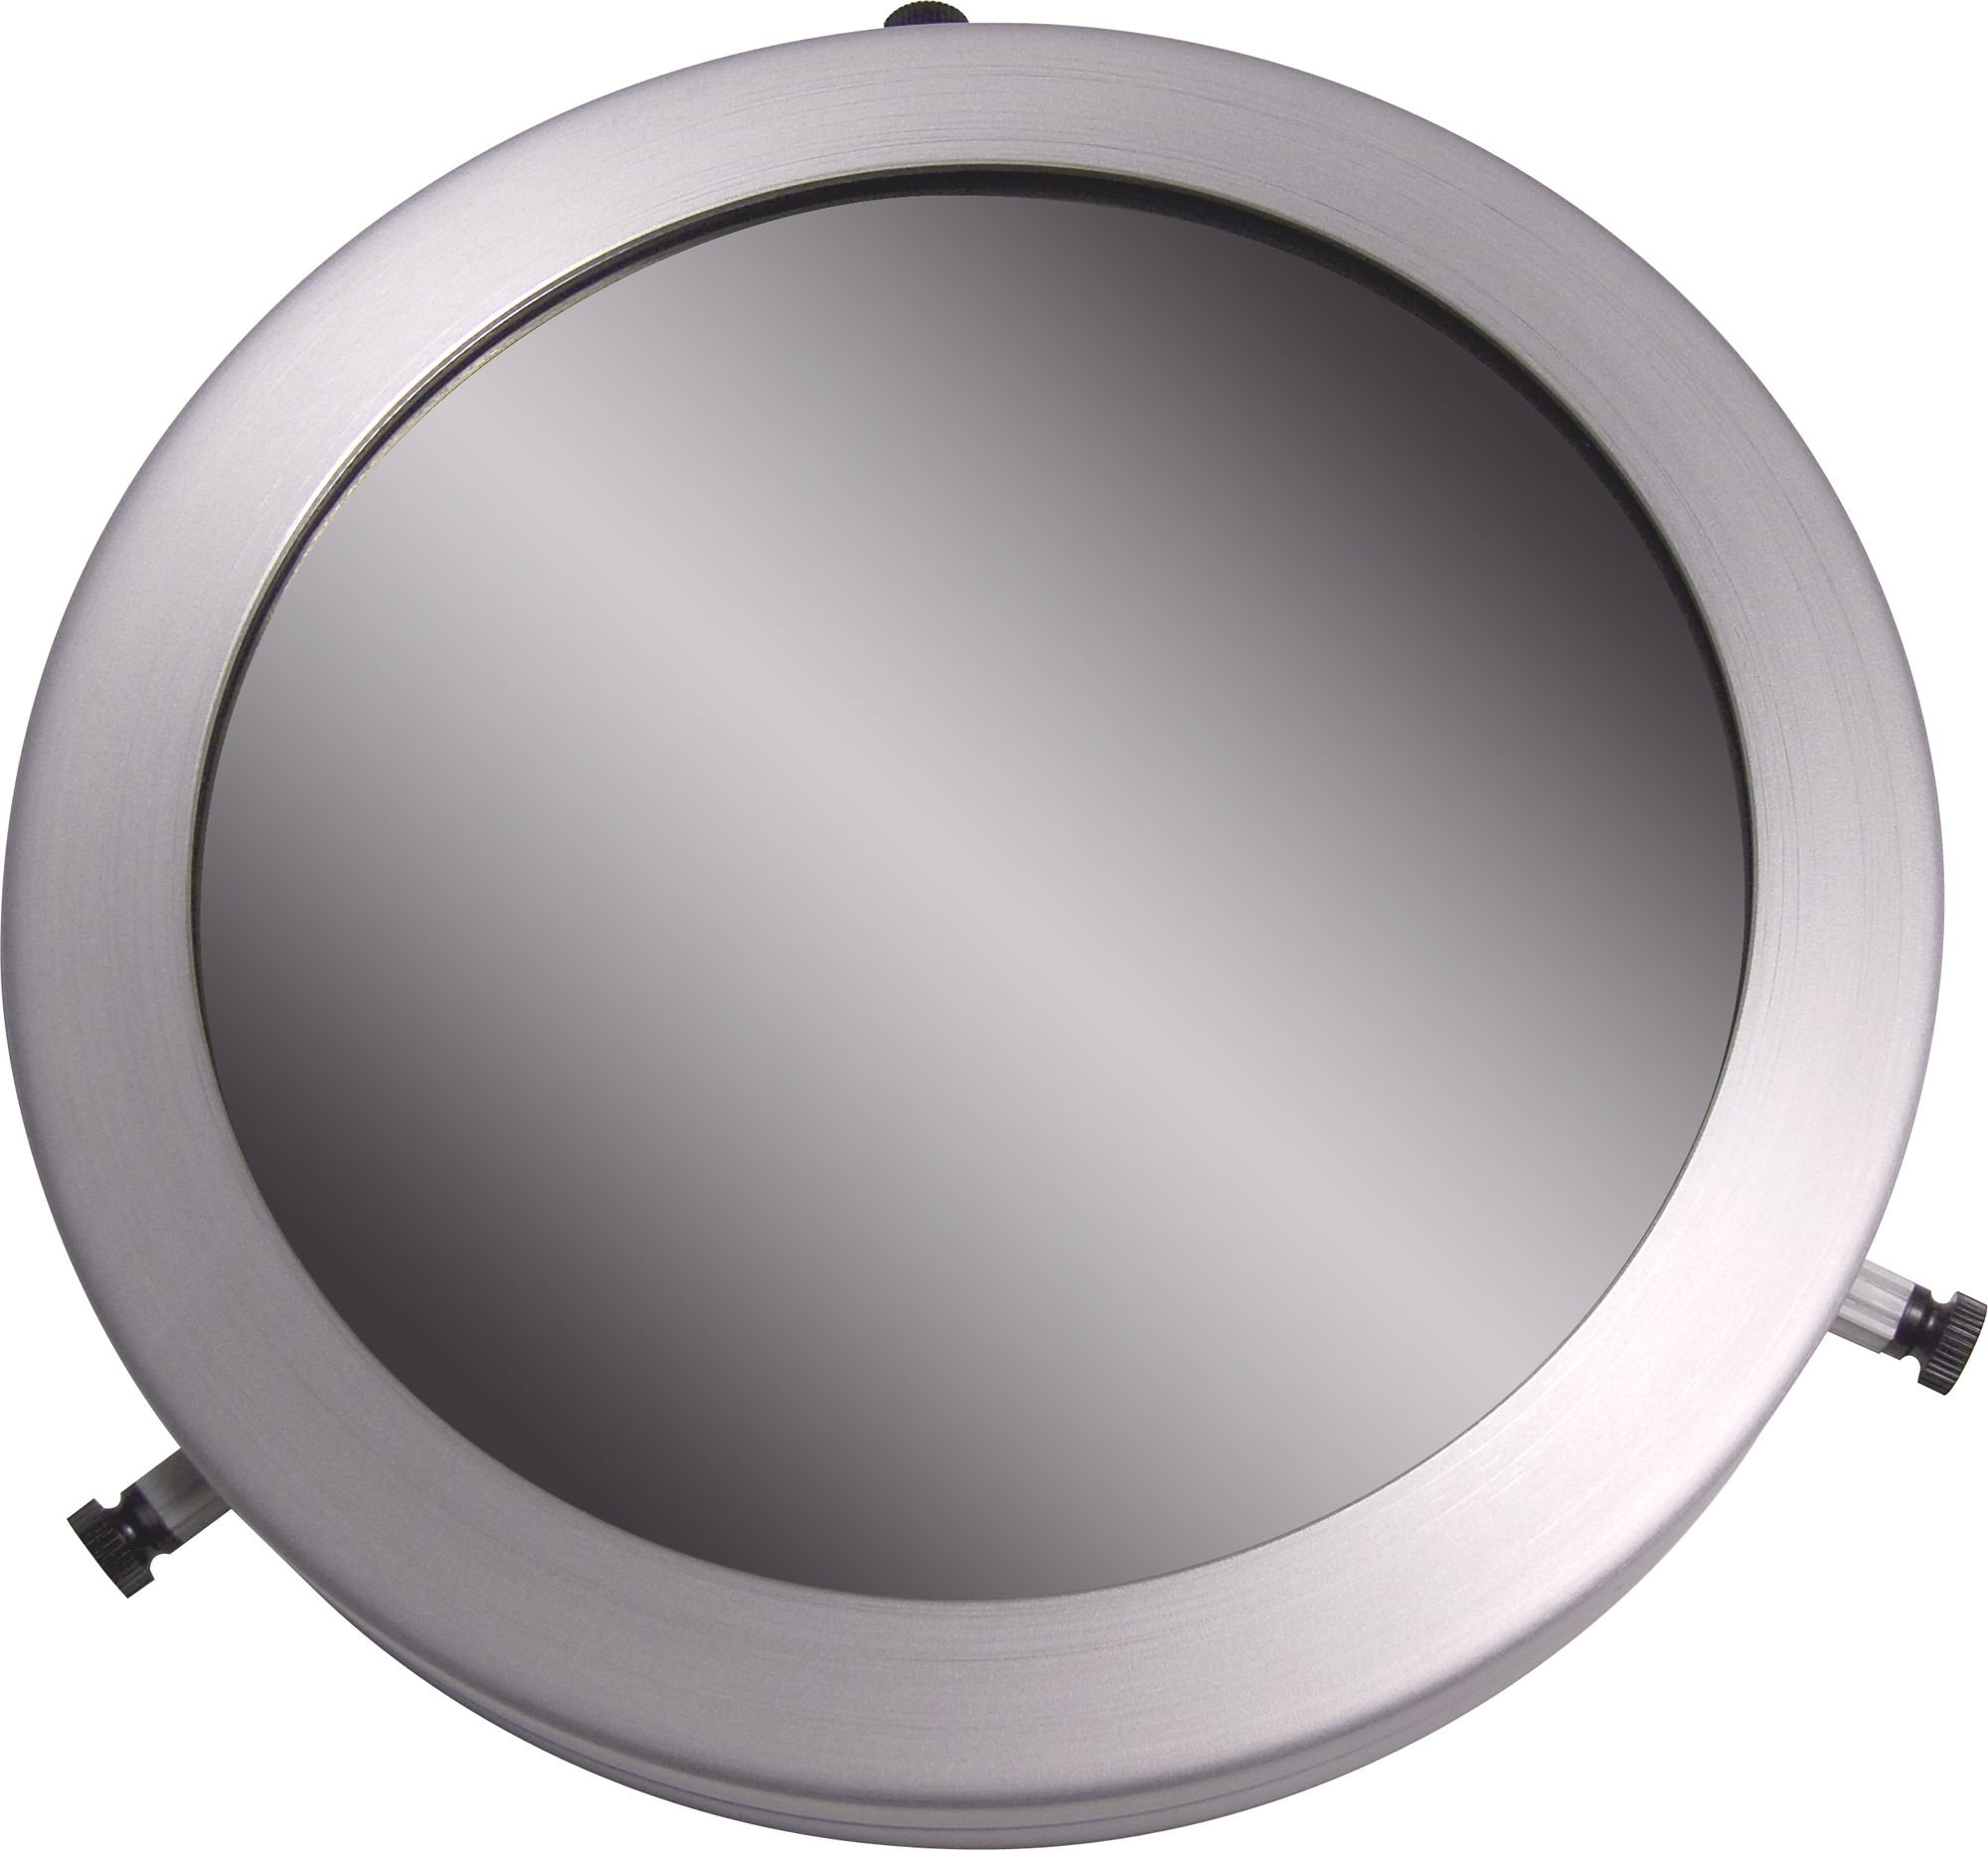 Orion 7781 7.52-Inch ID Full Aperture Solar Filter by Orion